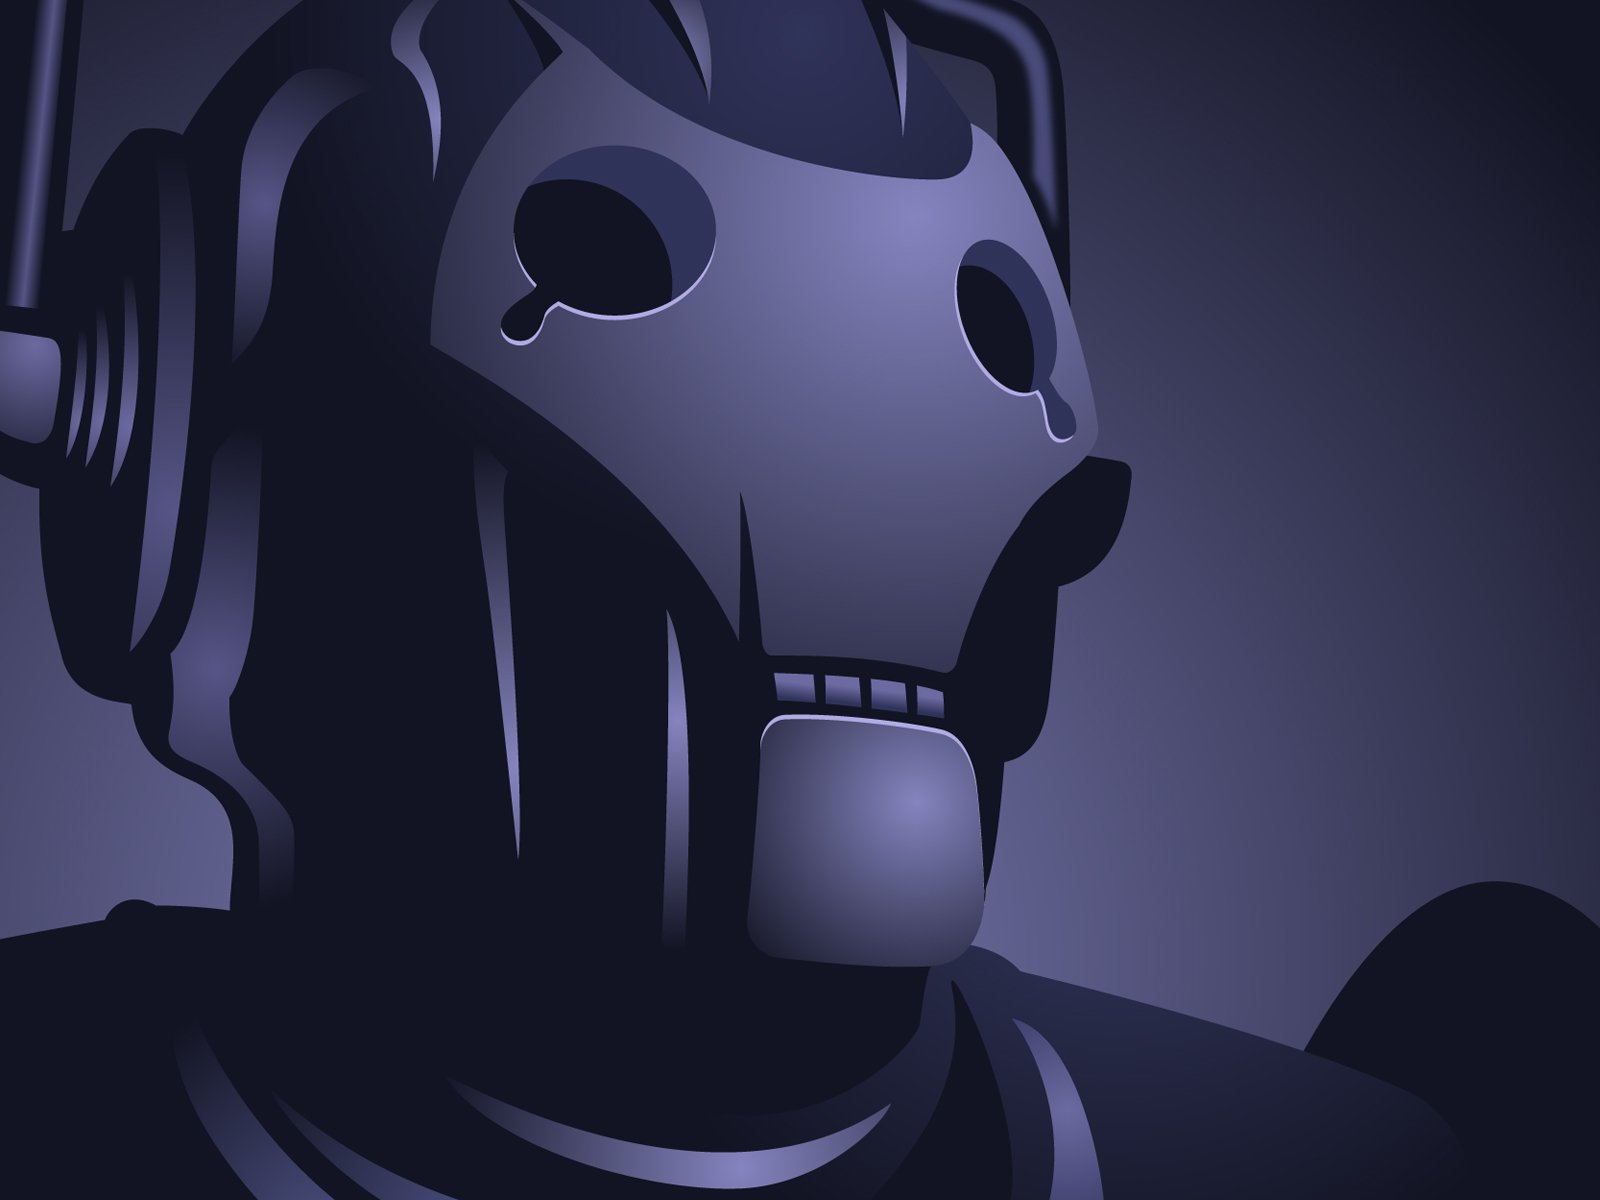 Background image 7945 - Tv Show Doctor Who Cyberman Doctor Who Wallpaper